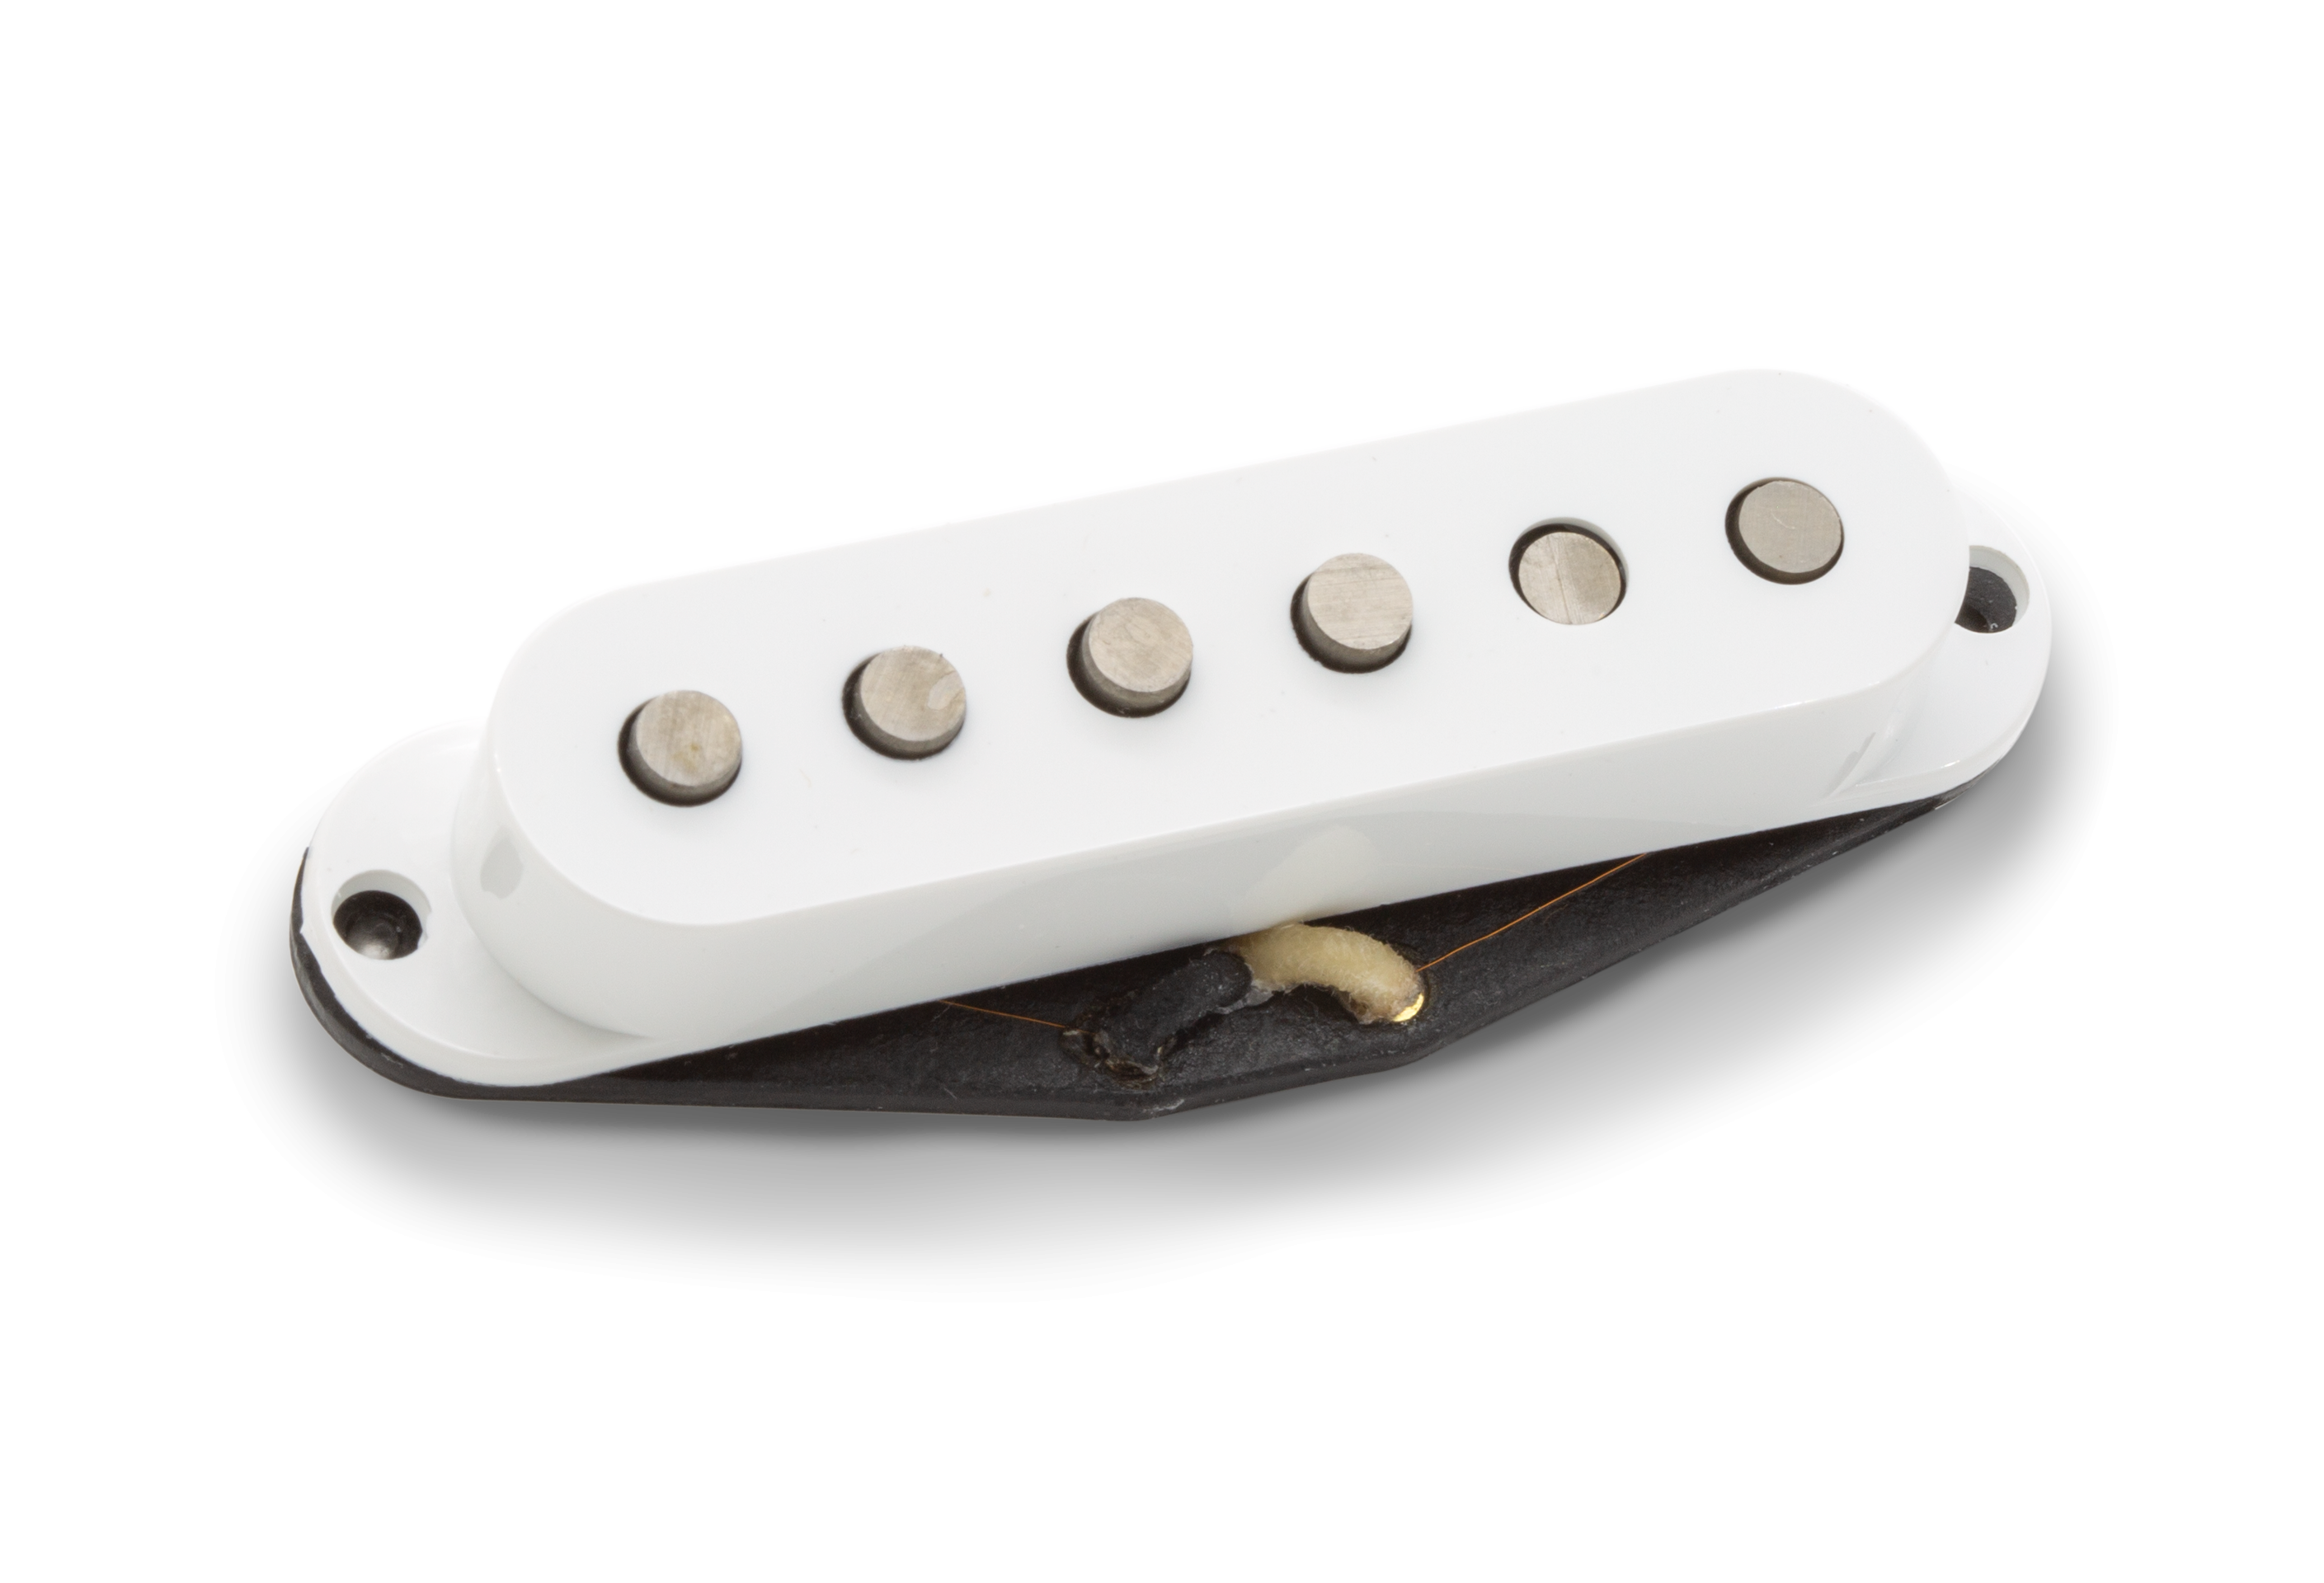 Seymour Duncan Antiquity Retrospec'd Texas Hot Strat - RW/RP Middle